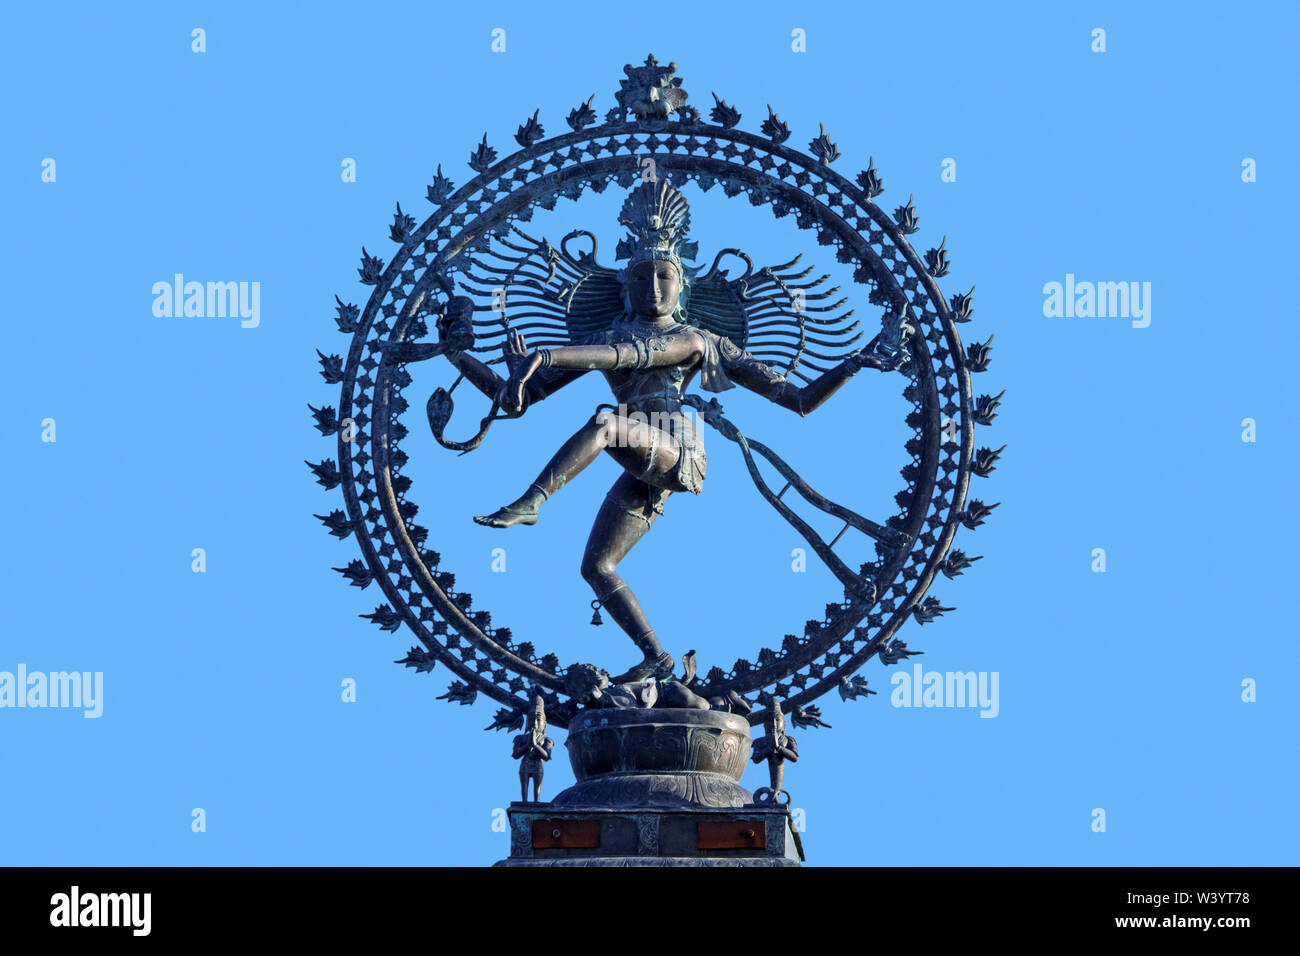 Nataraja, depiction of the Hindu god Shiva as the cosmic ecstatic dancer / Lord of the Dance against blue sky - Stock Image